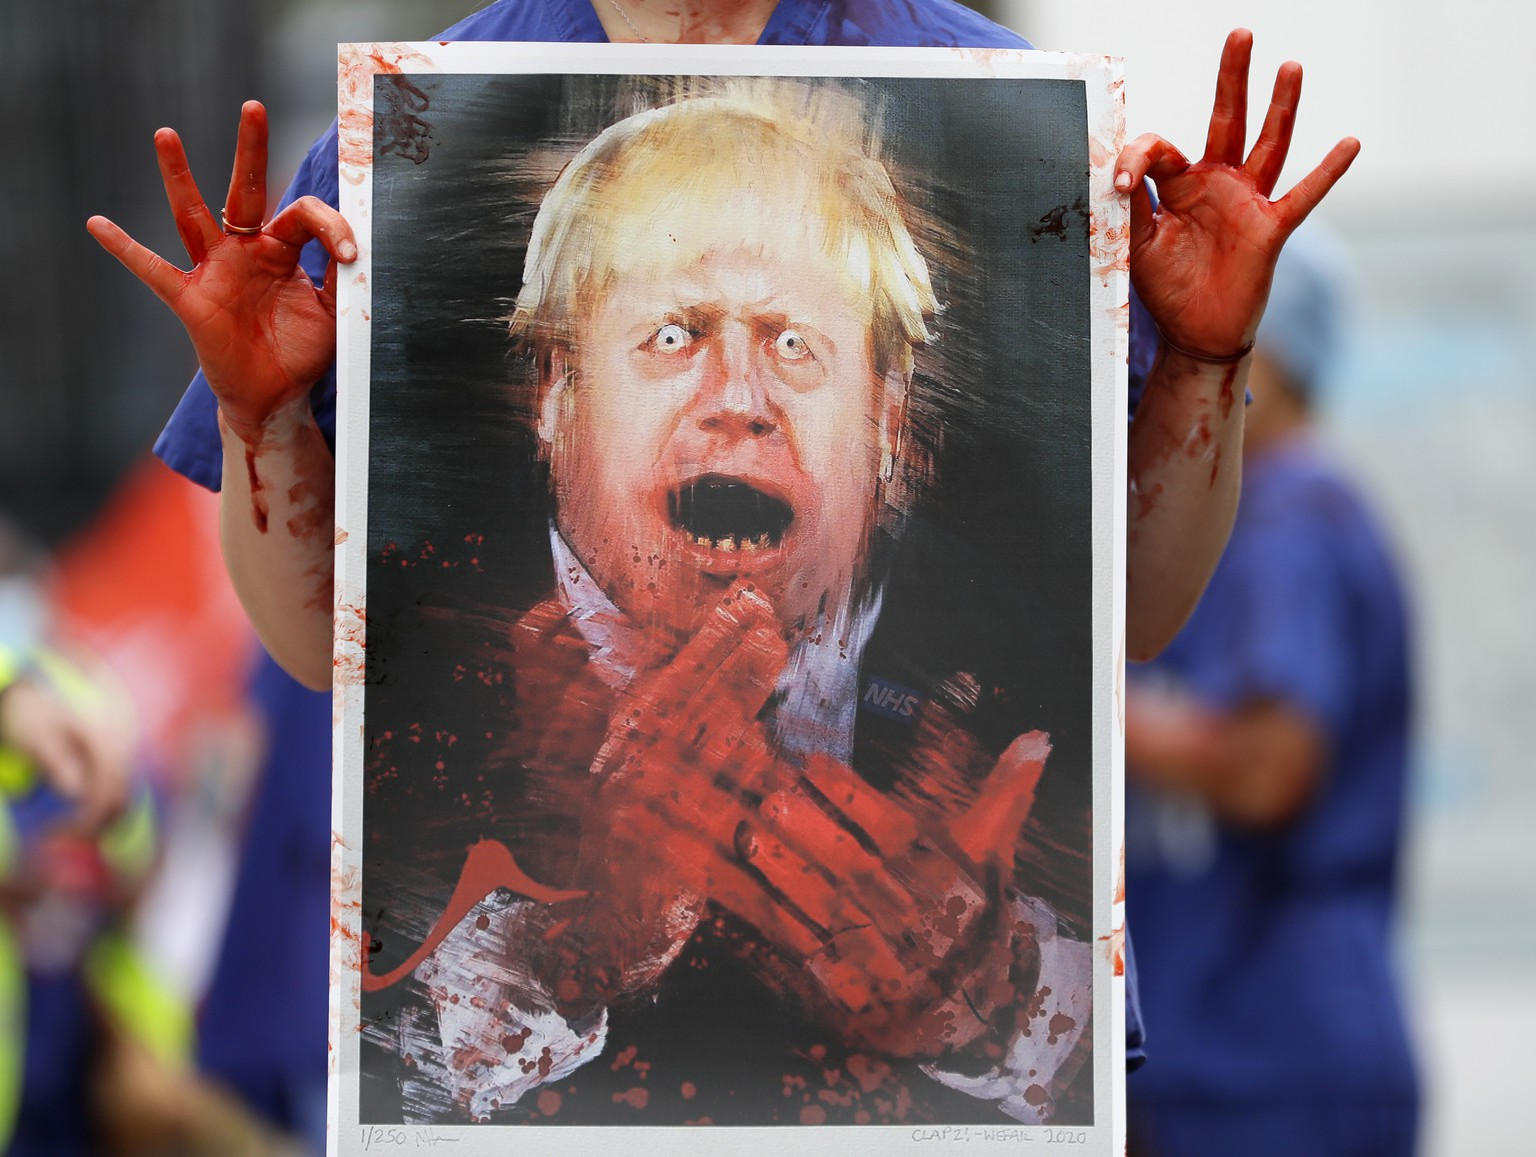 A nurse holds a painting of Prime Minister Boris Johnson clapping with blood on his hands as part of a demonstration of NHS workers at hospitals across London to demand a 15 per cent pay rise by the government in London, Wednesday, Aug. 26, 2020.(AP Photo/Kirsty Wigglesworth)